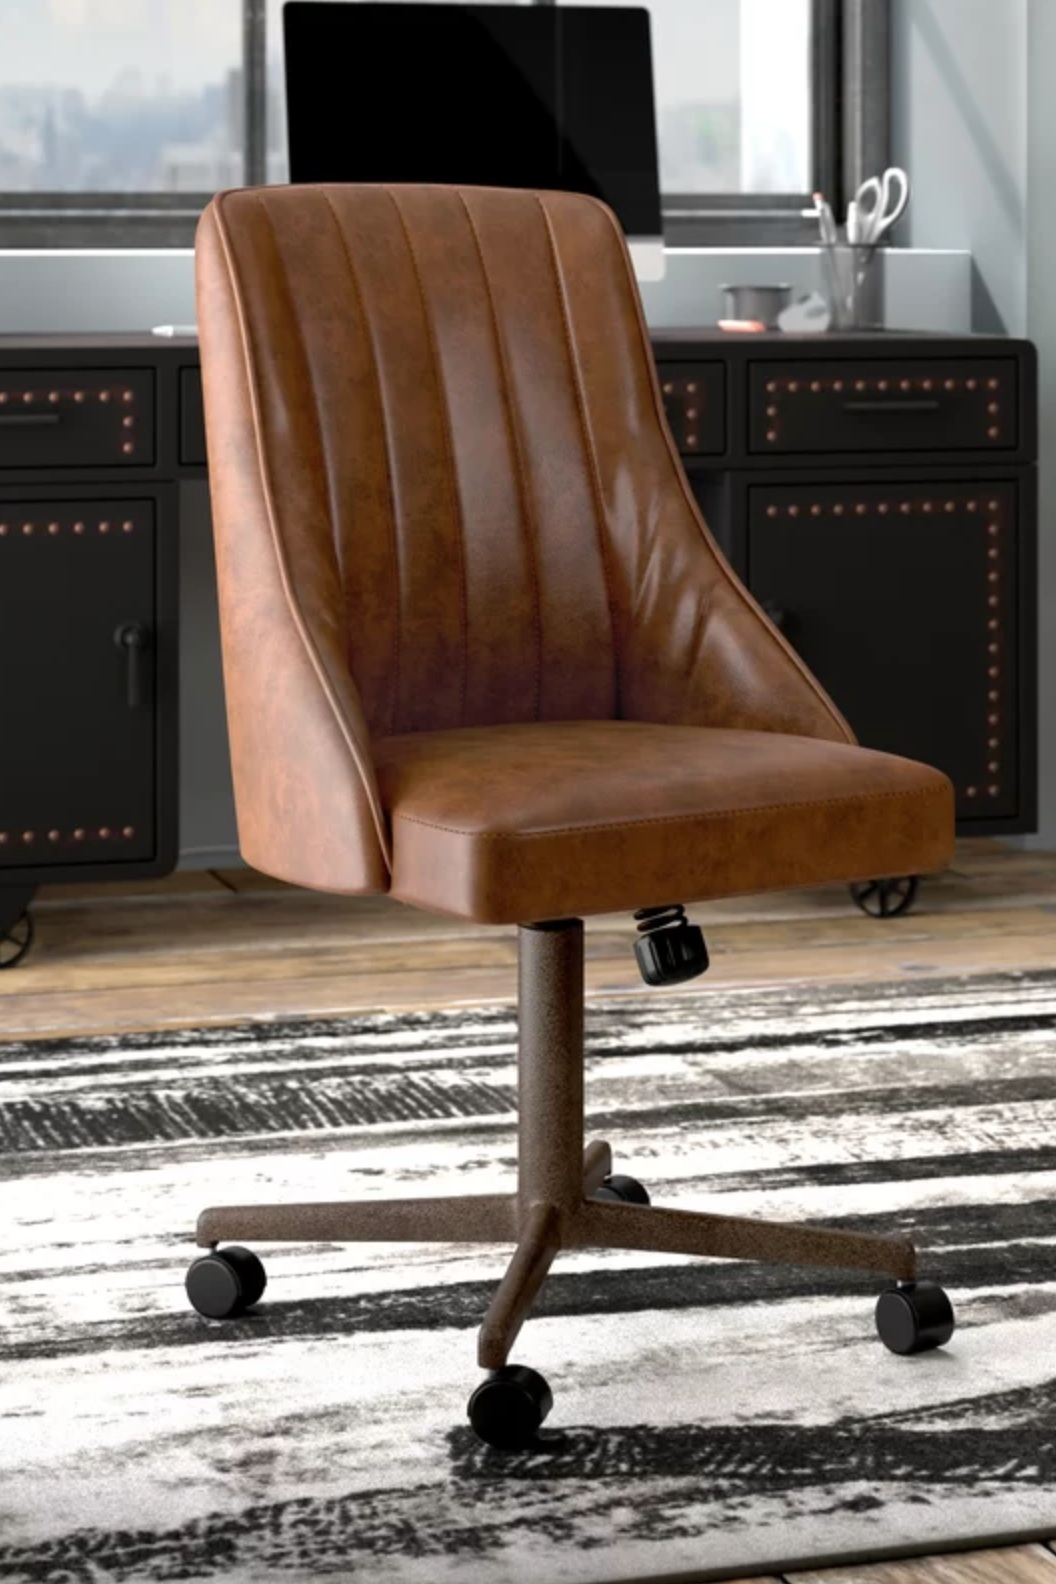 Rio Office Chair Camel Brown Leather.